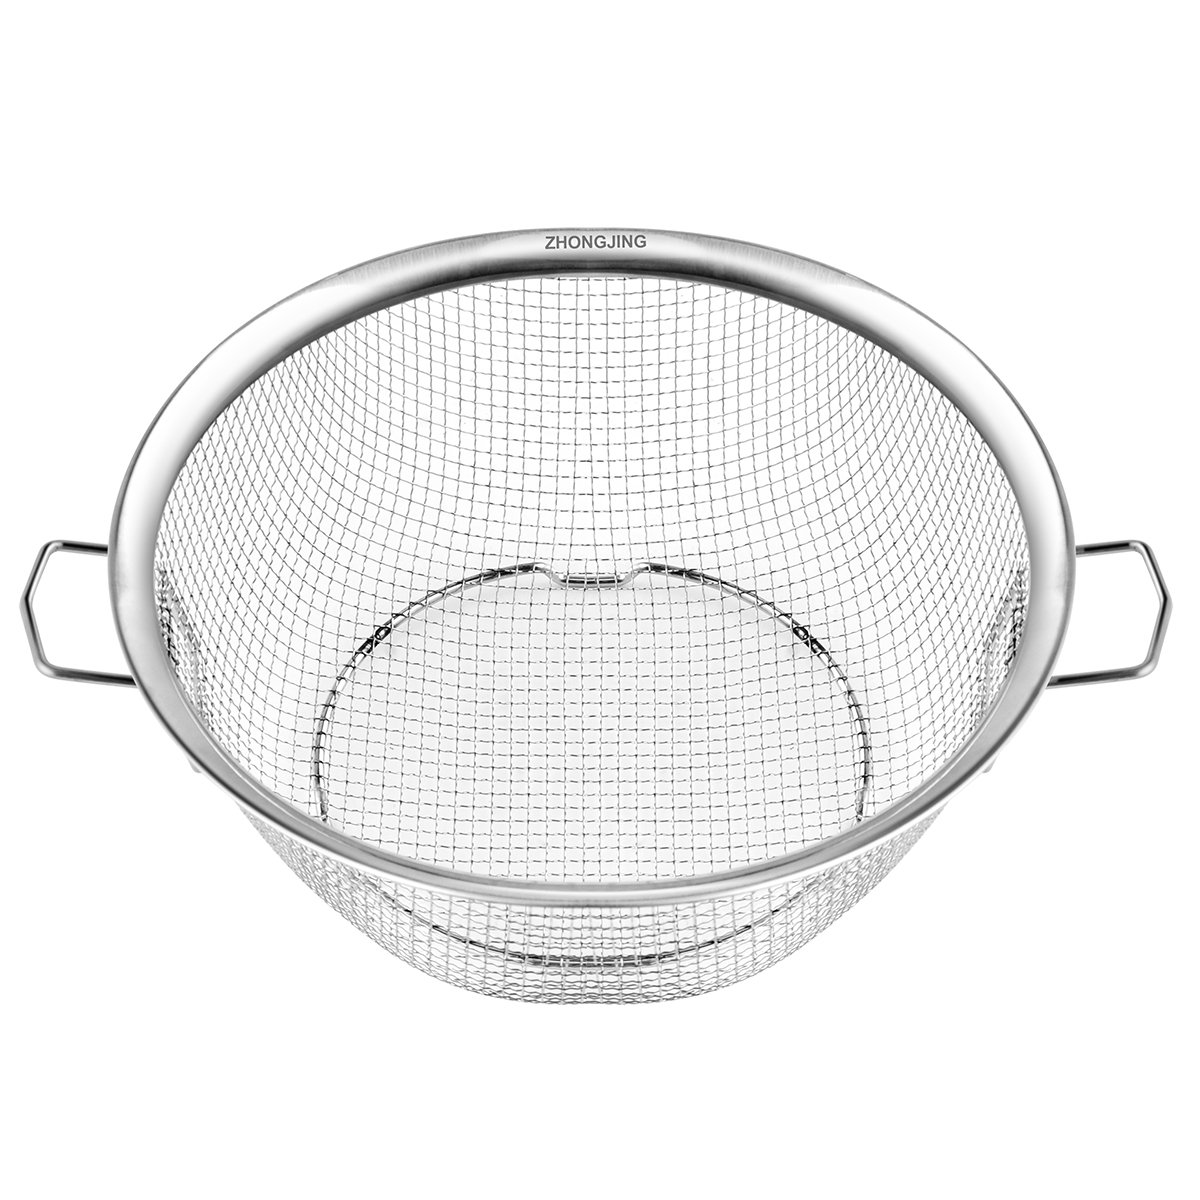 ZHONGJING Colander - Stainless Steel Wire Mesh Strainer Net Baskets with Foldable Handles & Resting Base - Strain, Drain, Rinse